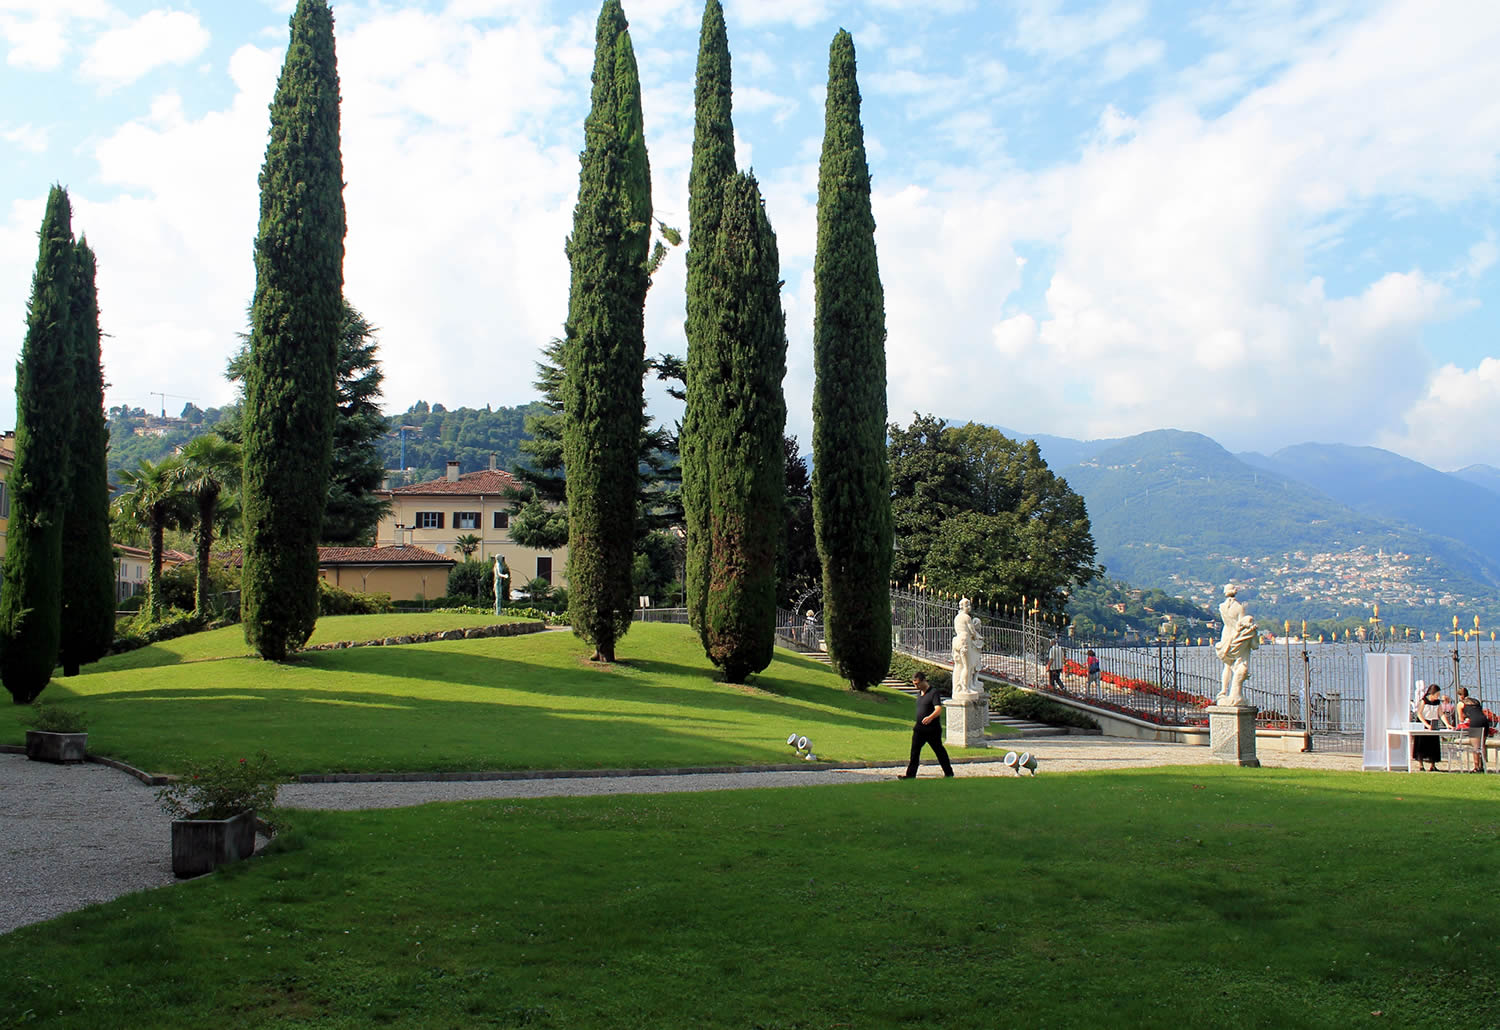 adesign lake como, garden view